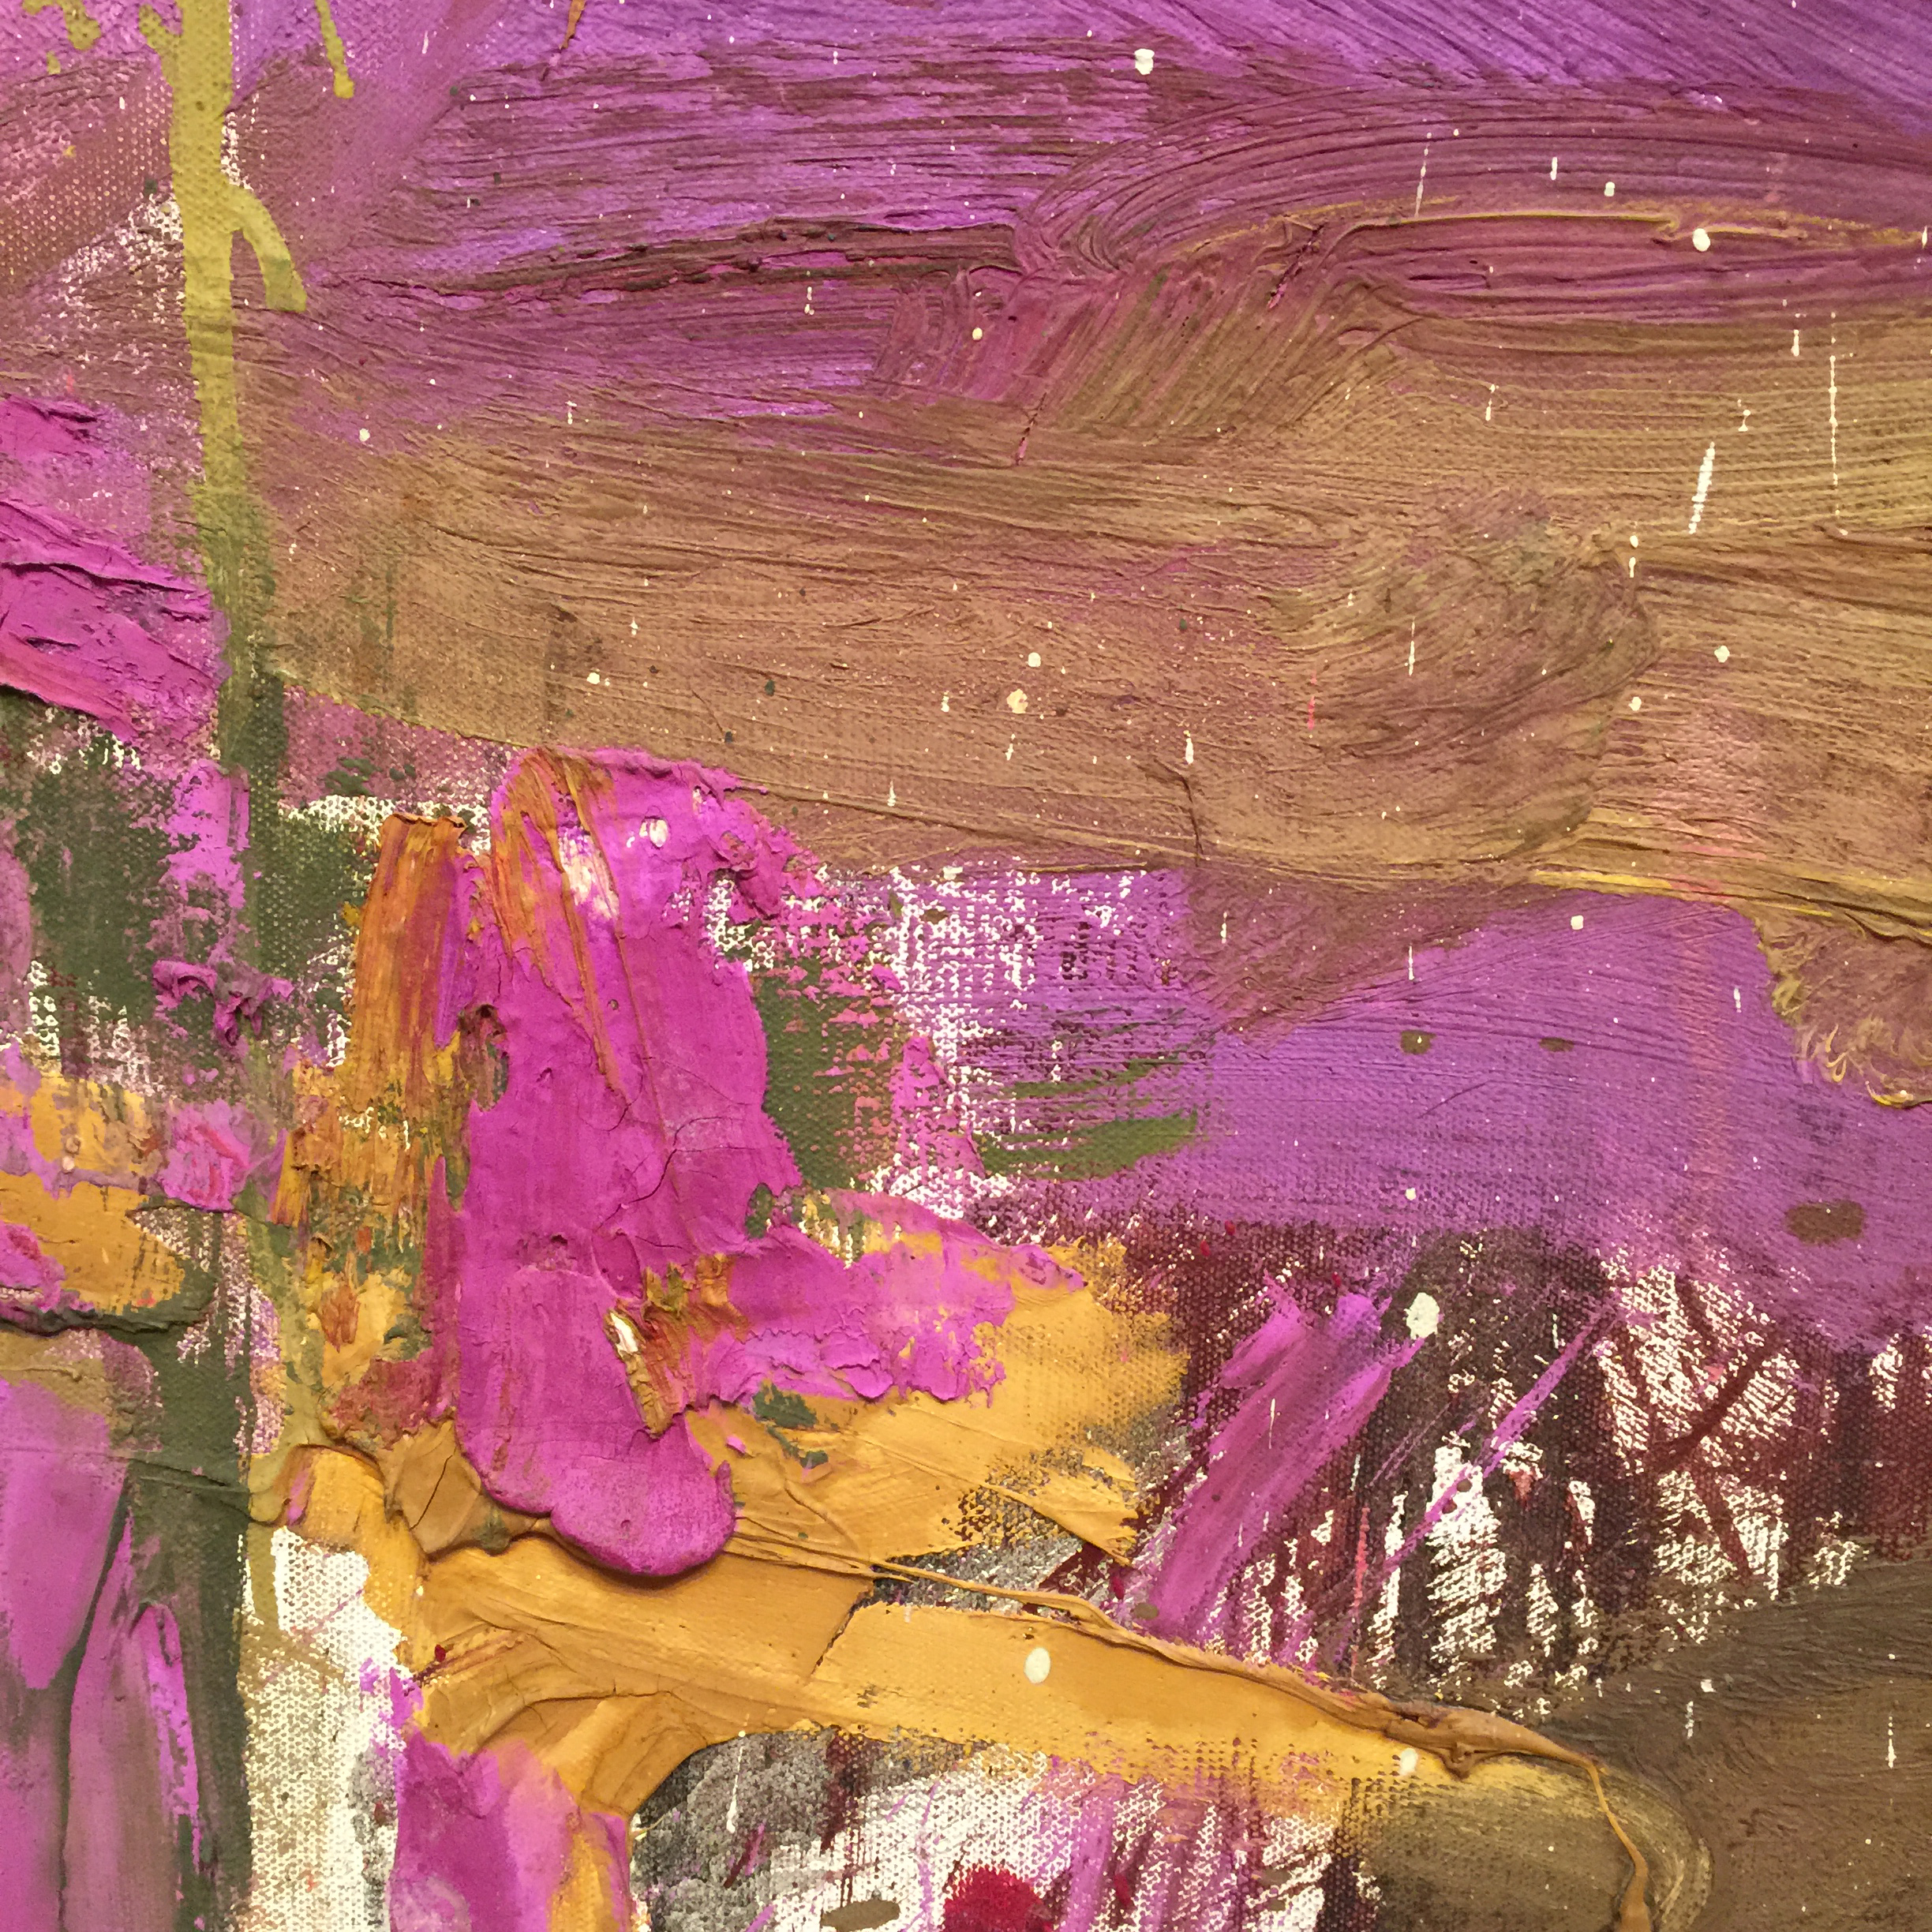 [detail] It was timely for me to see these color relationships as I am working on two paintings with strong yellow and purple elements.